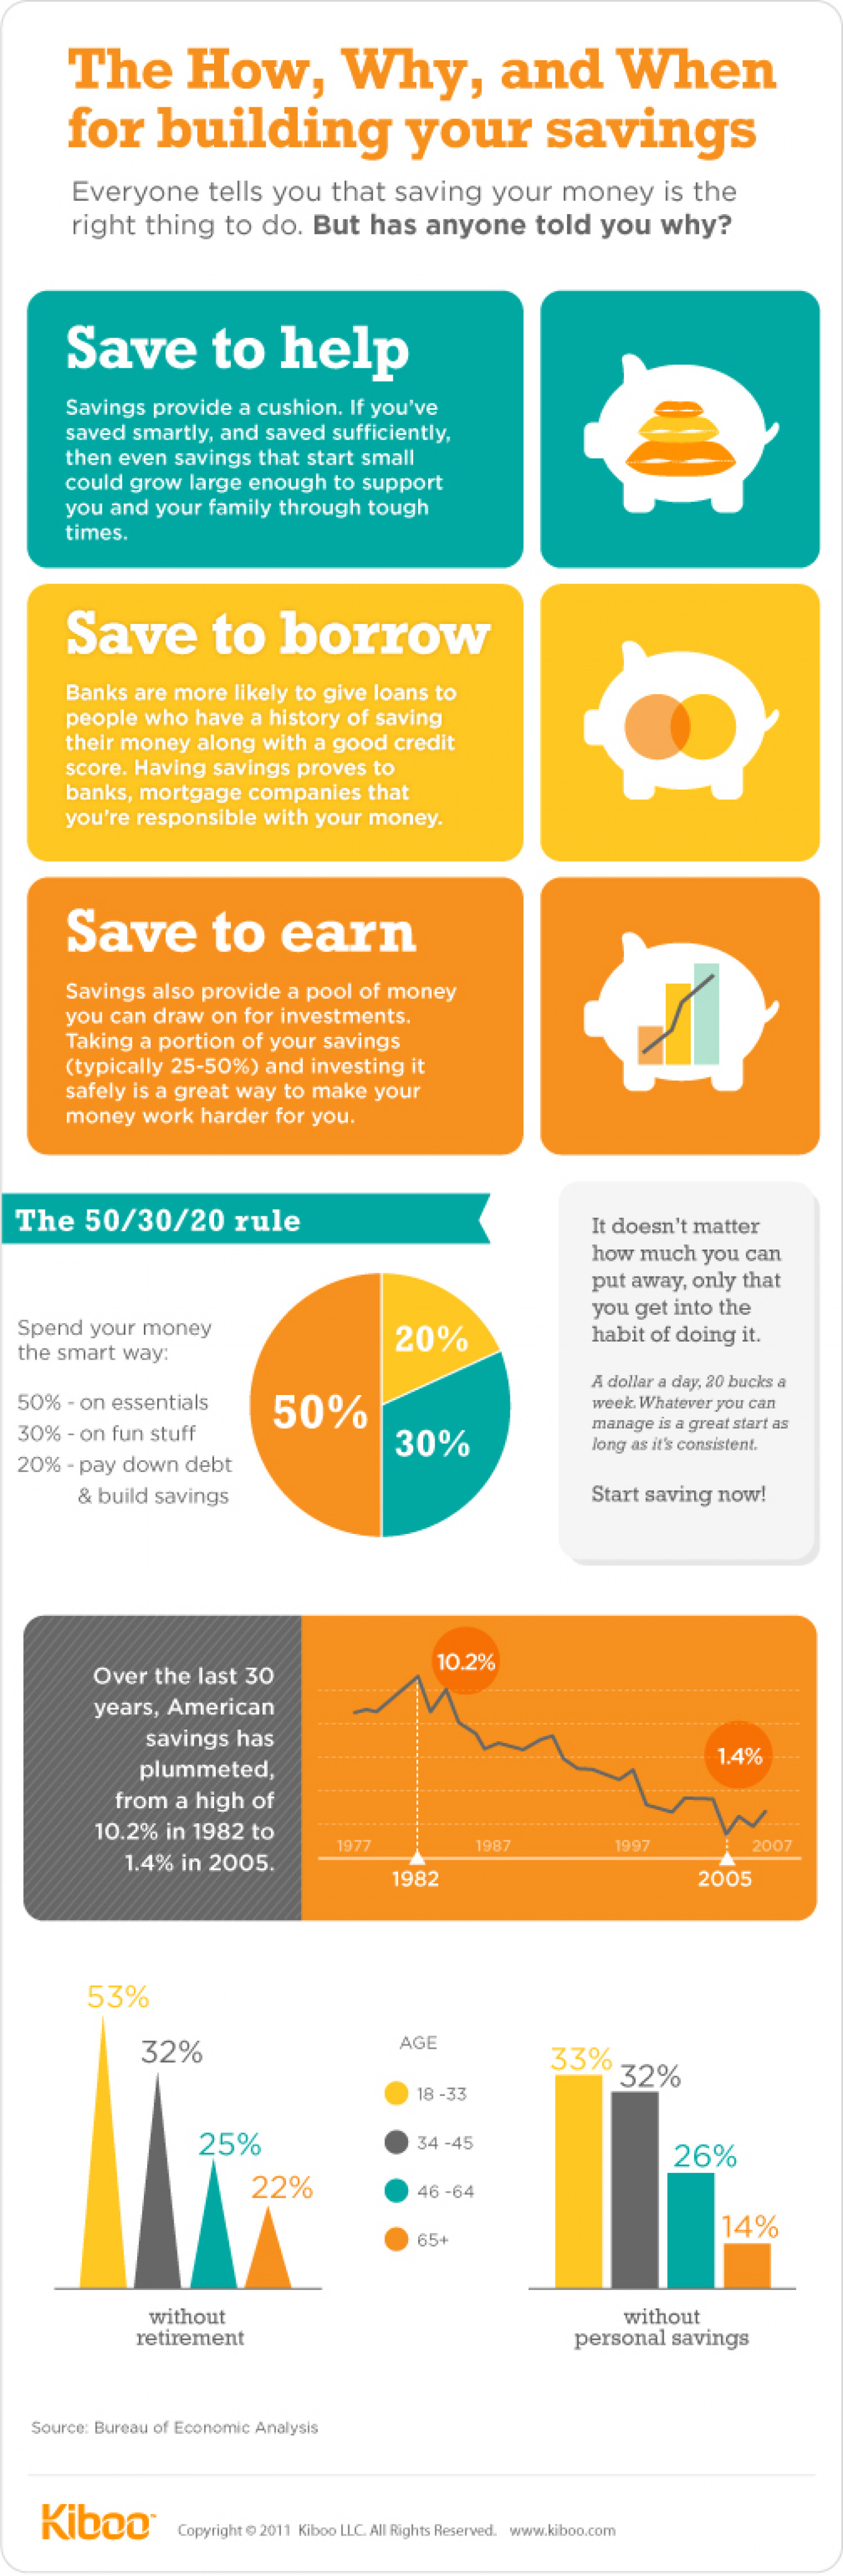 The How, Why and When for building your savings | Kiboo Infographic